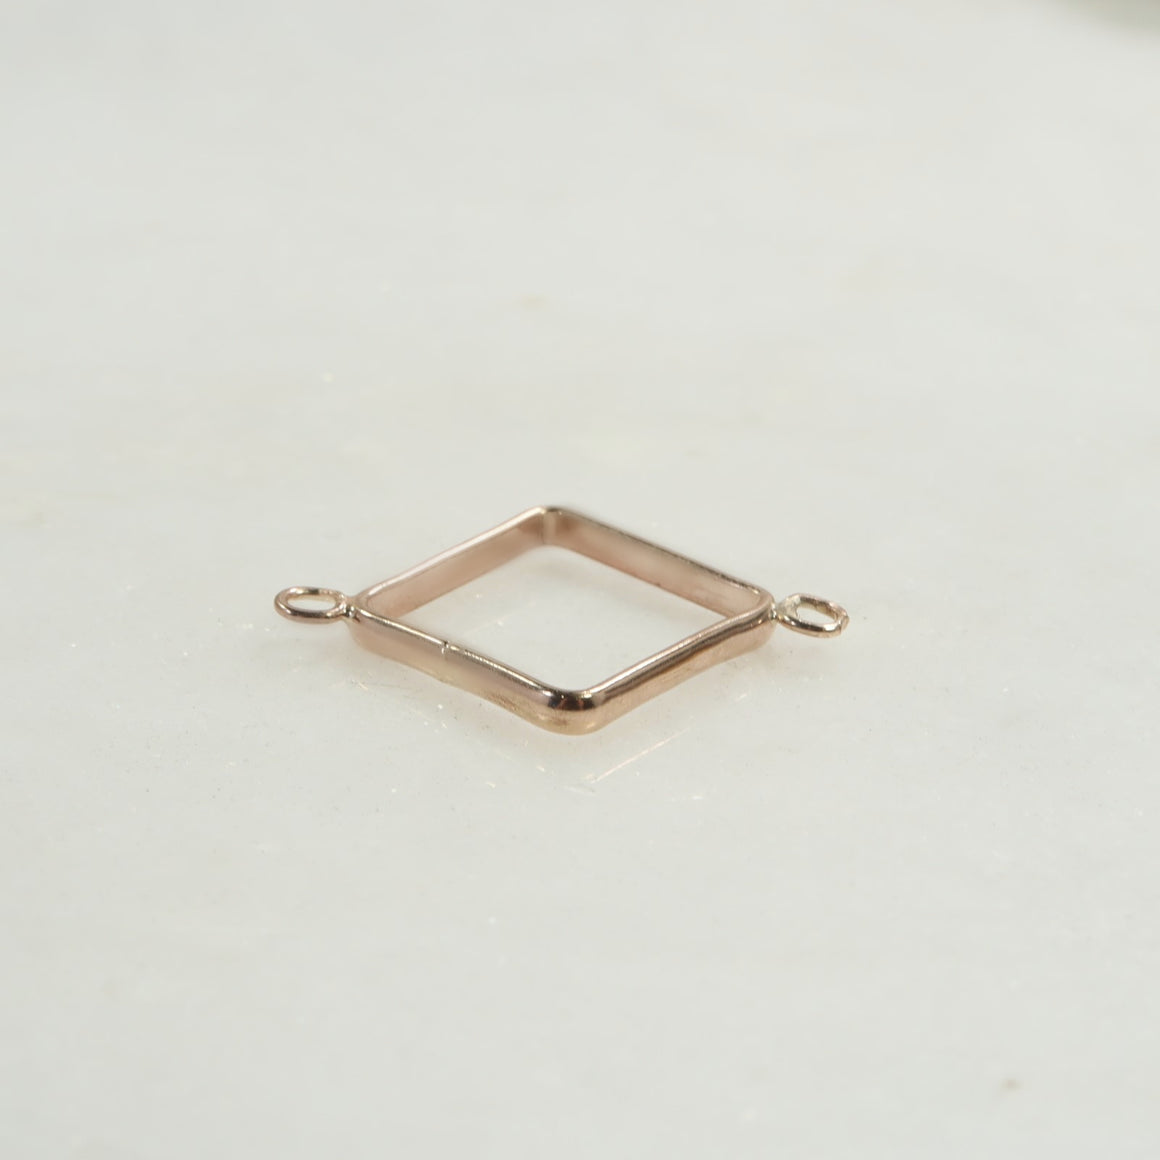 square open bezel with 2 rings in pink gold